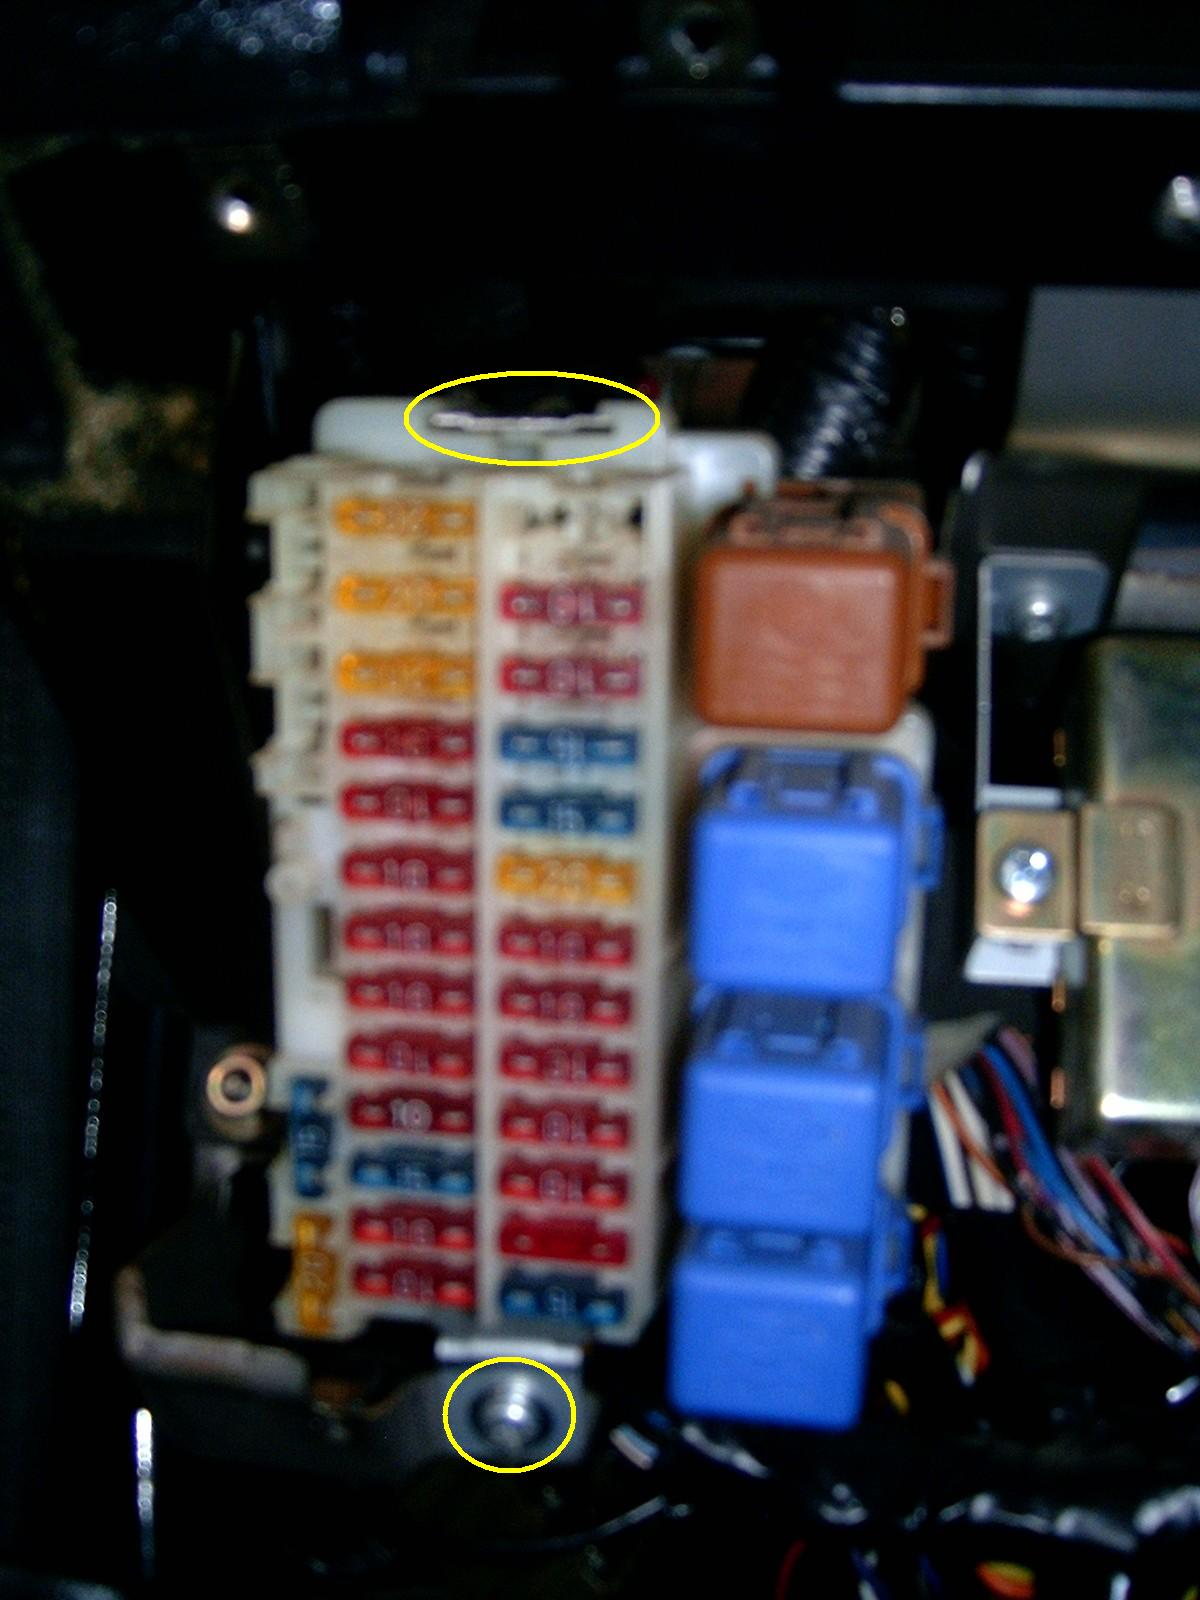 nissan_maxima_dash_removal_18 nissan maxima digital dash hud tutorial 2006 nissan maxima fuse box diagram at creativeand.co